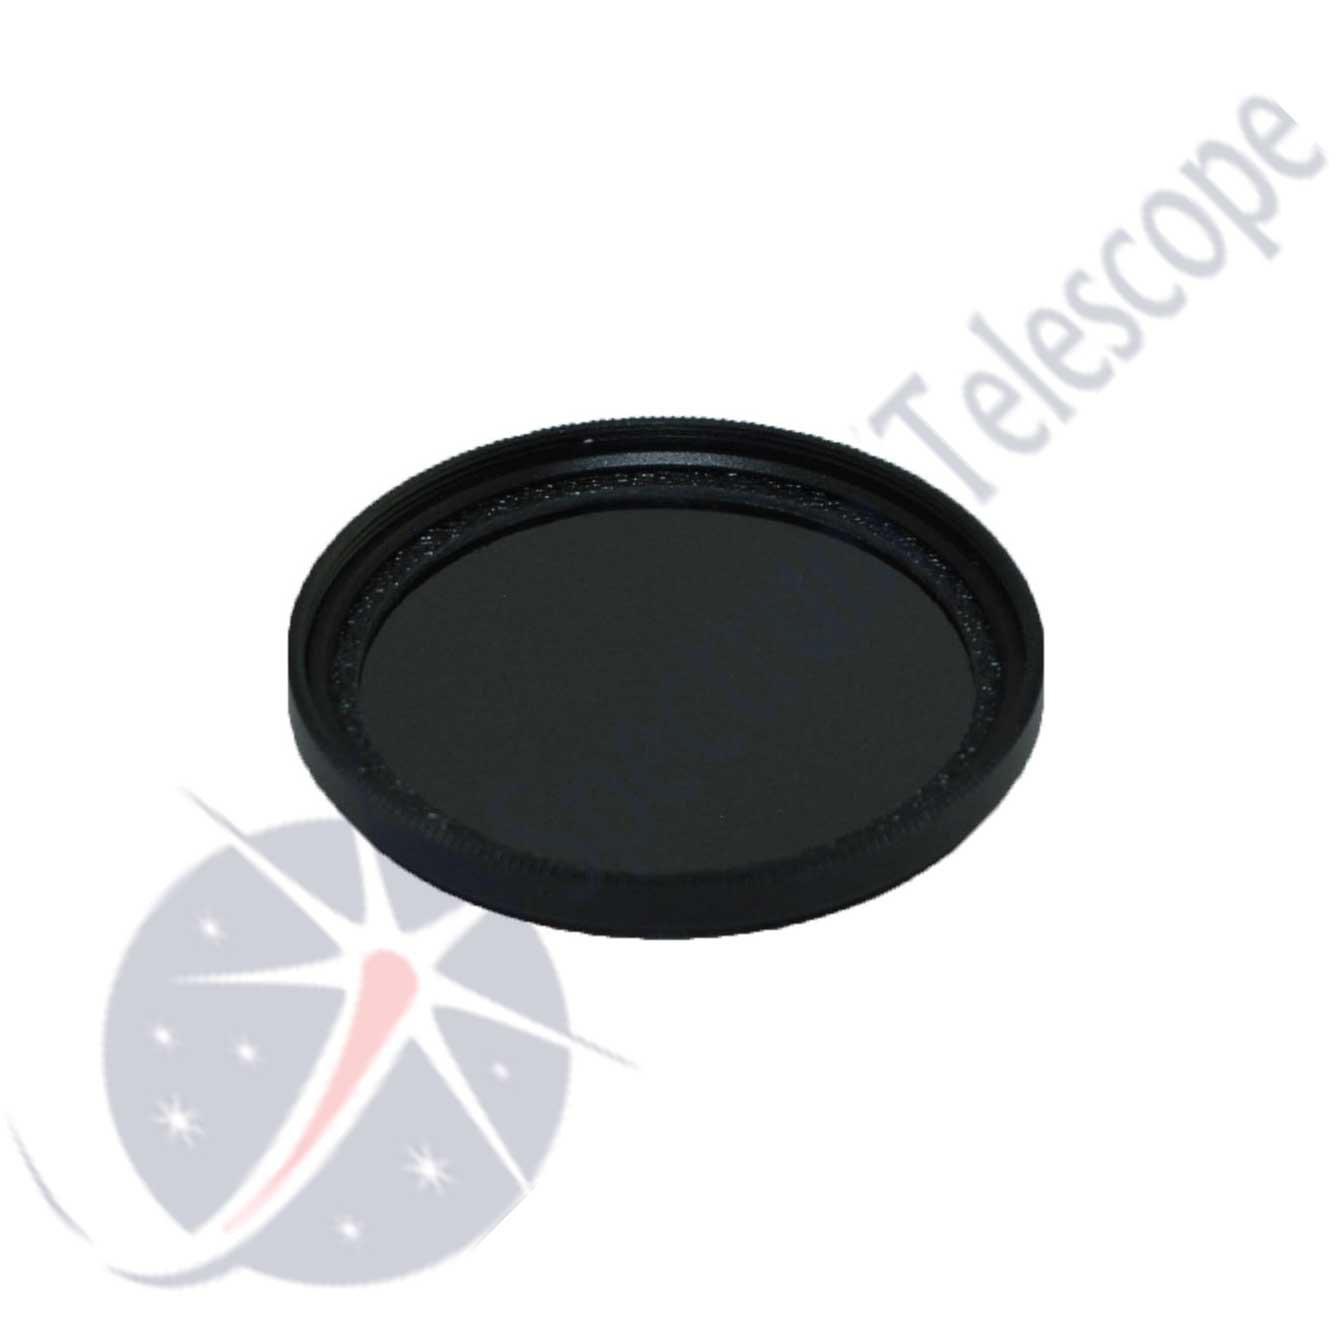 Solar Filter 40.5mm Spectrum Telescope (ST-40.5mm) Threaded Film Solar Filter for photographing the SUN or solar eclipse